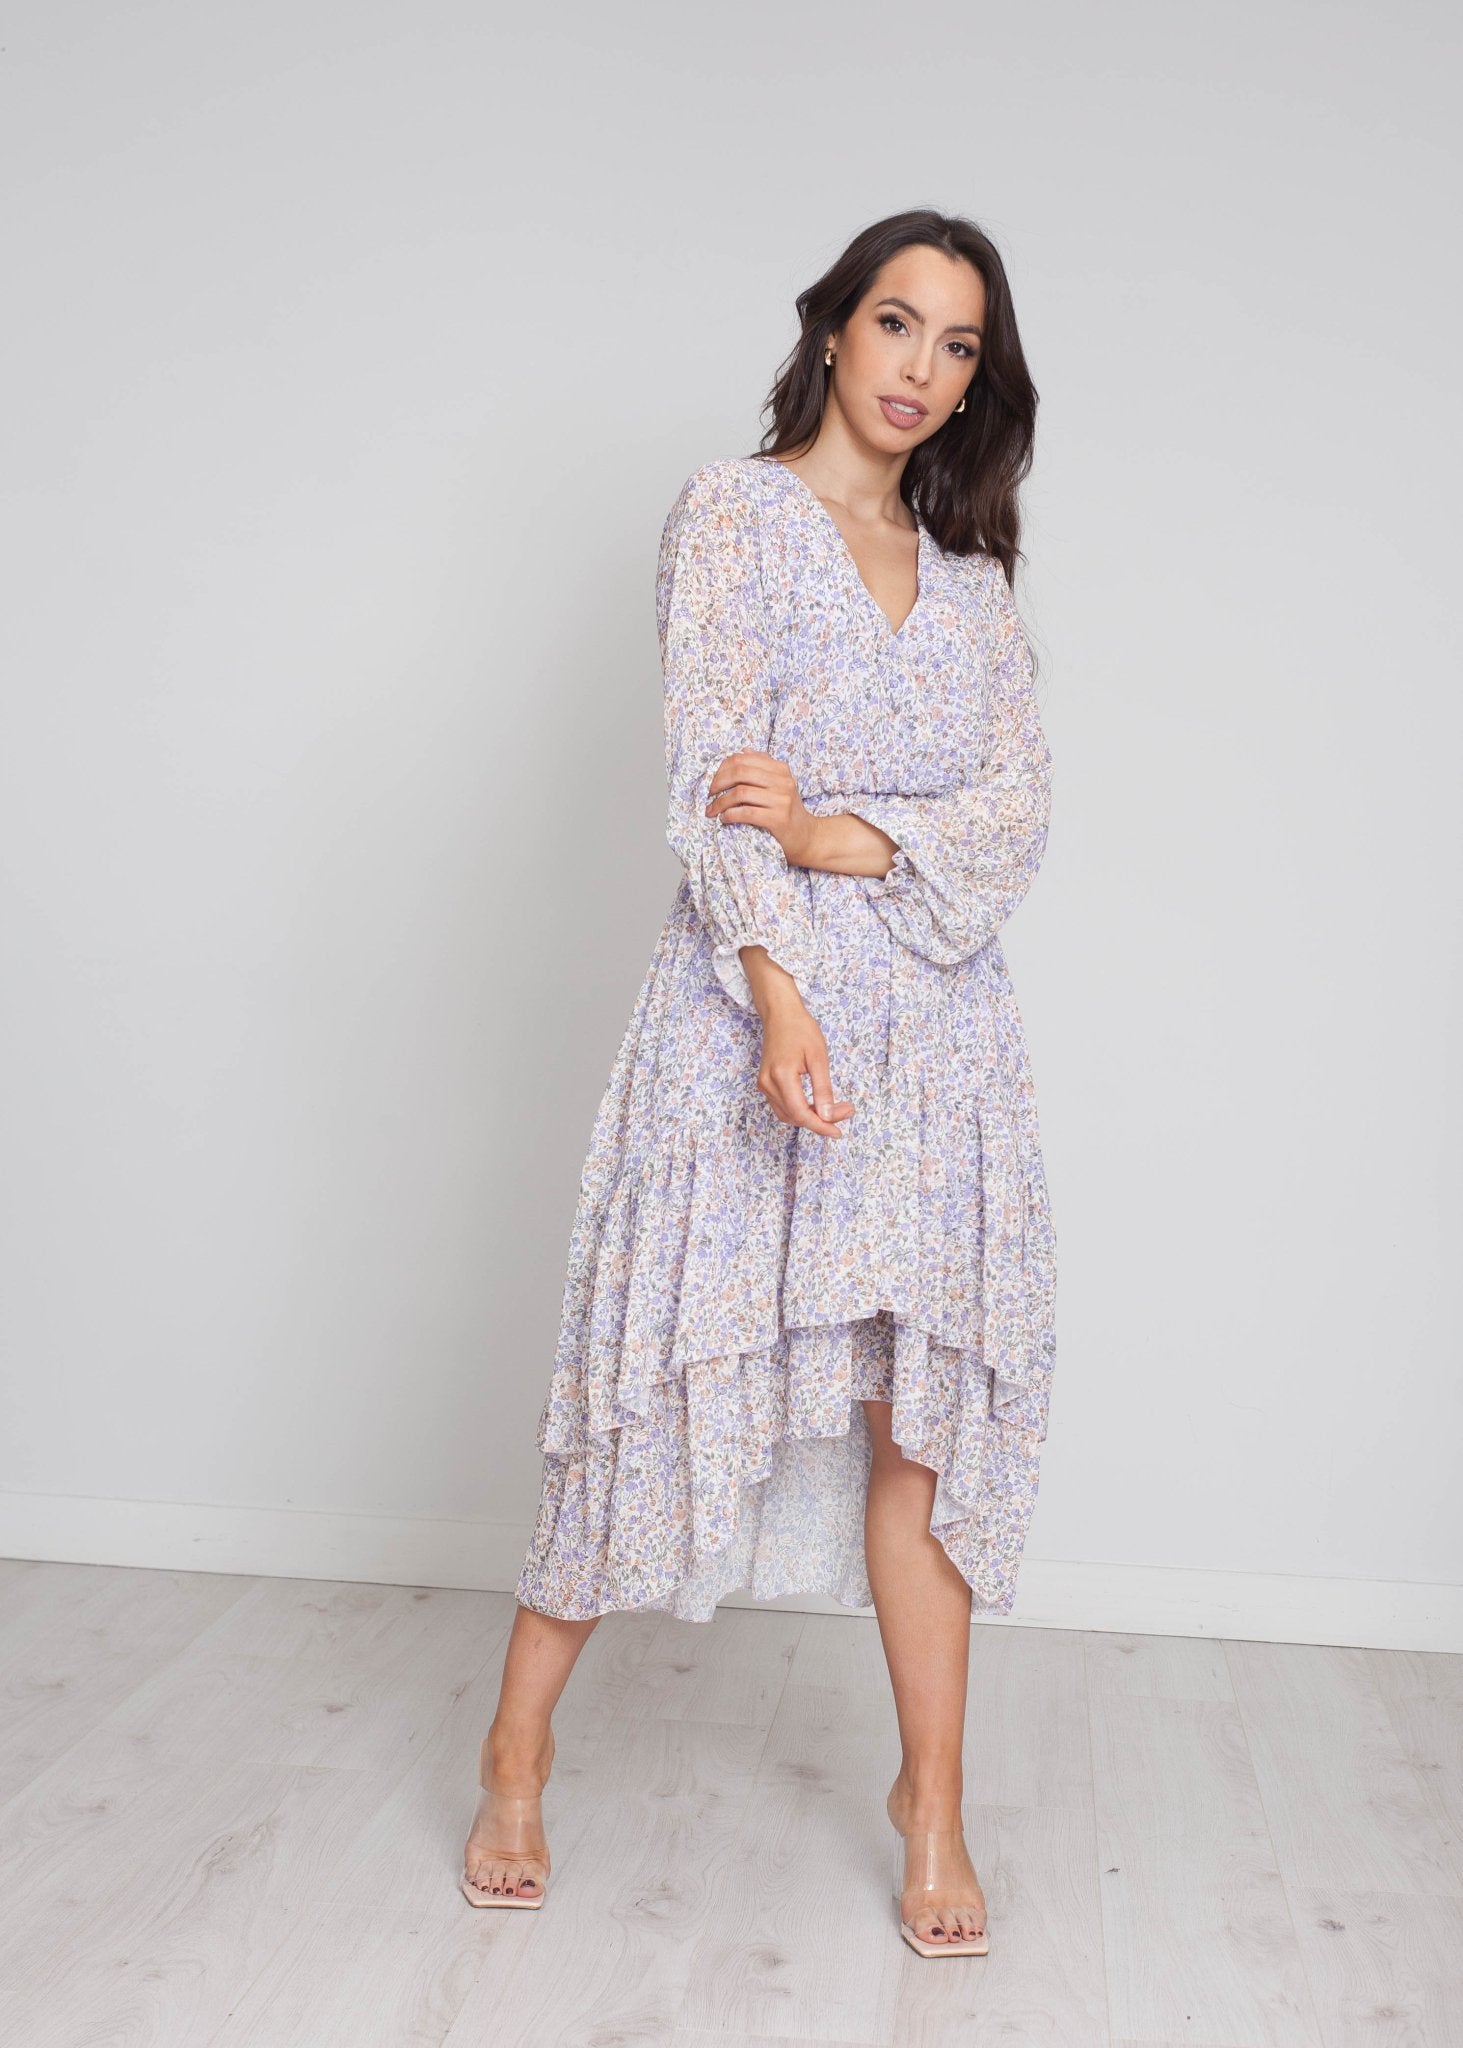 Marley Tiered Frill Dress In Lilac Floral - The Walk in Wardrobe